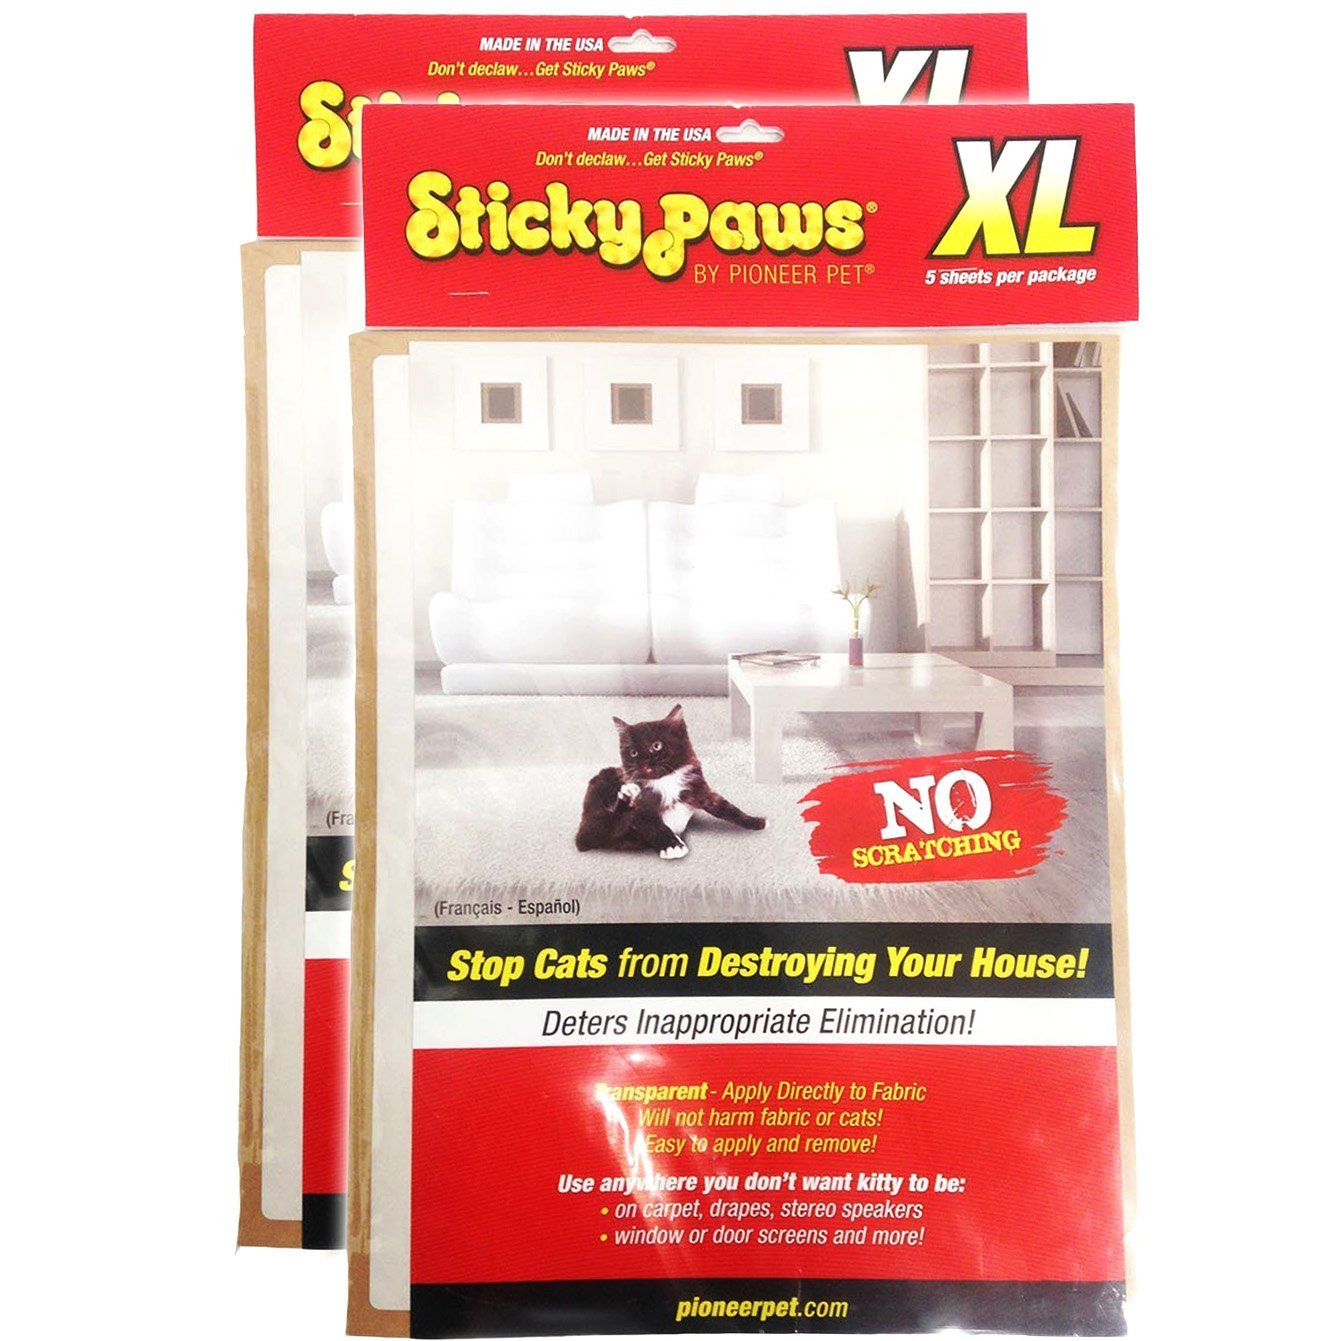 2-Packs XL Sticky Paws Furniture Sheets by Pioneer Pet 10 Sheets Total